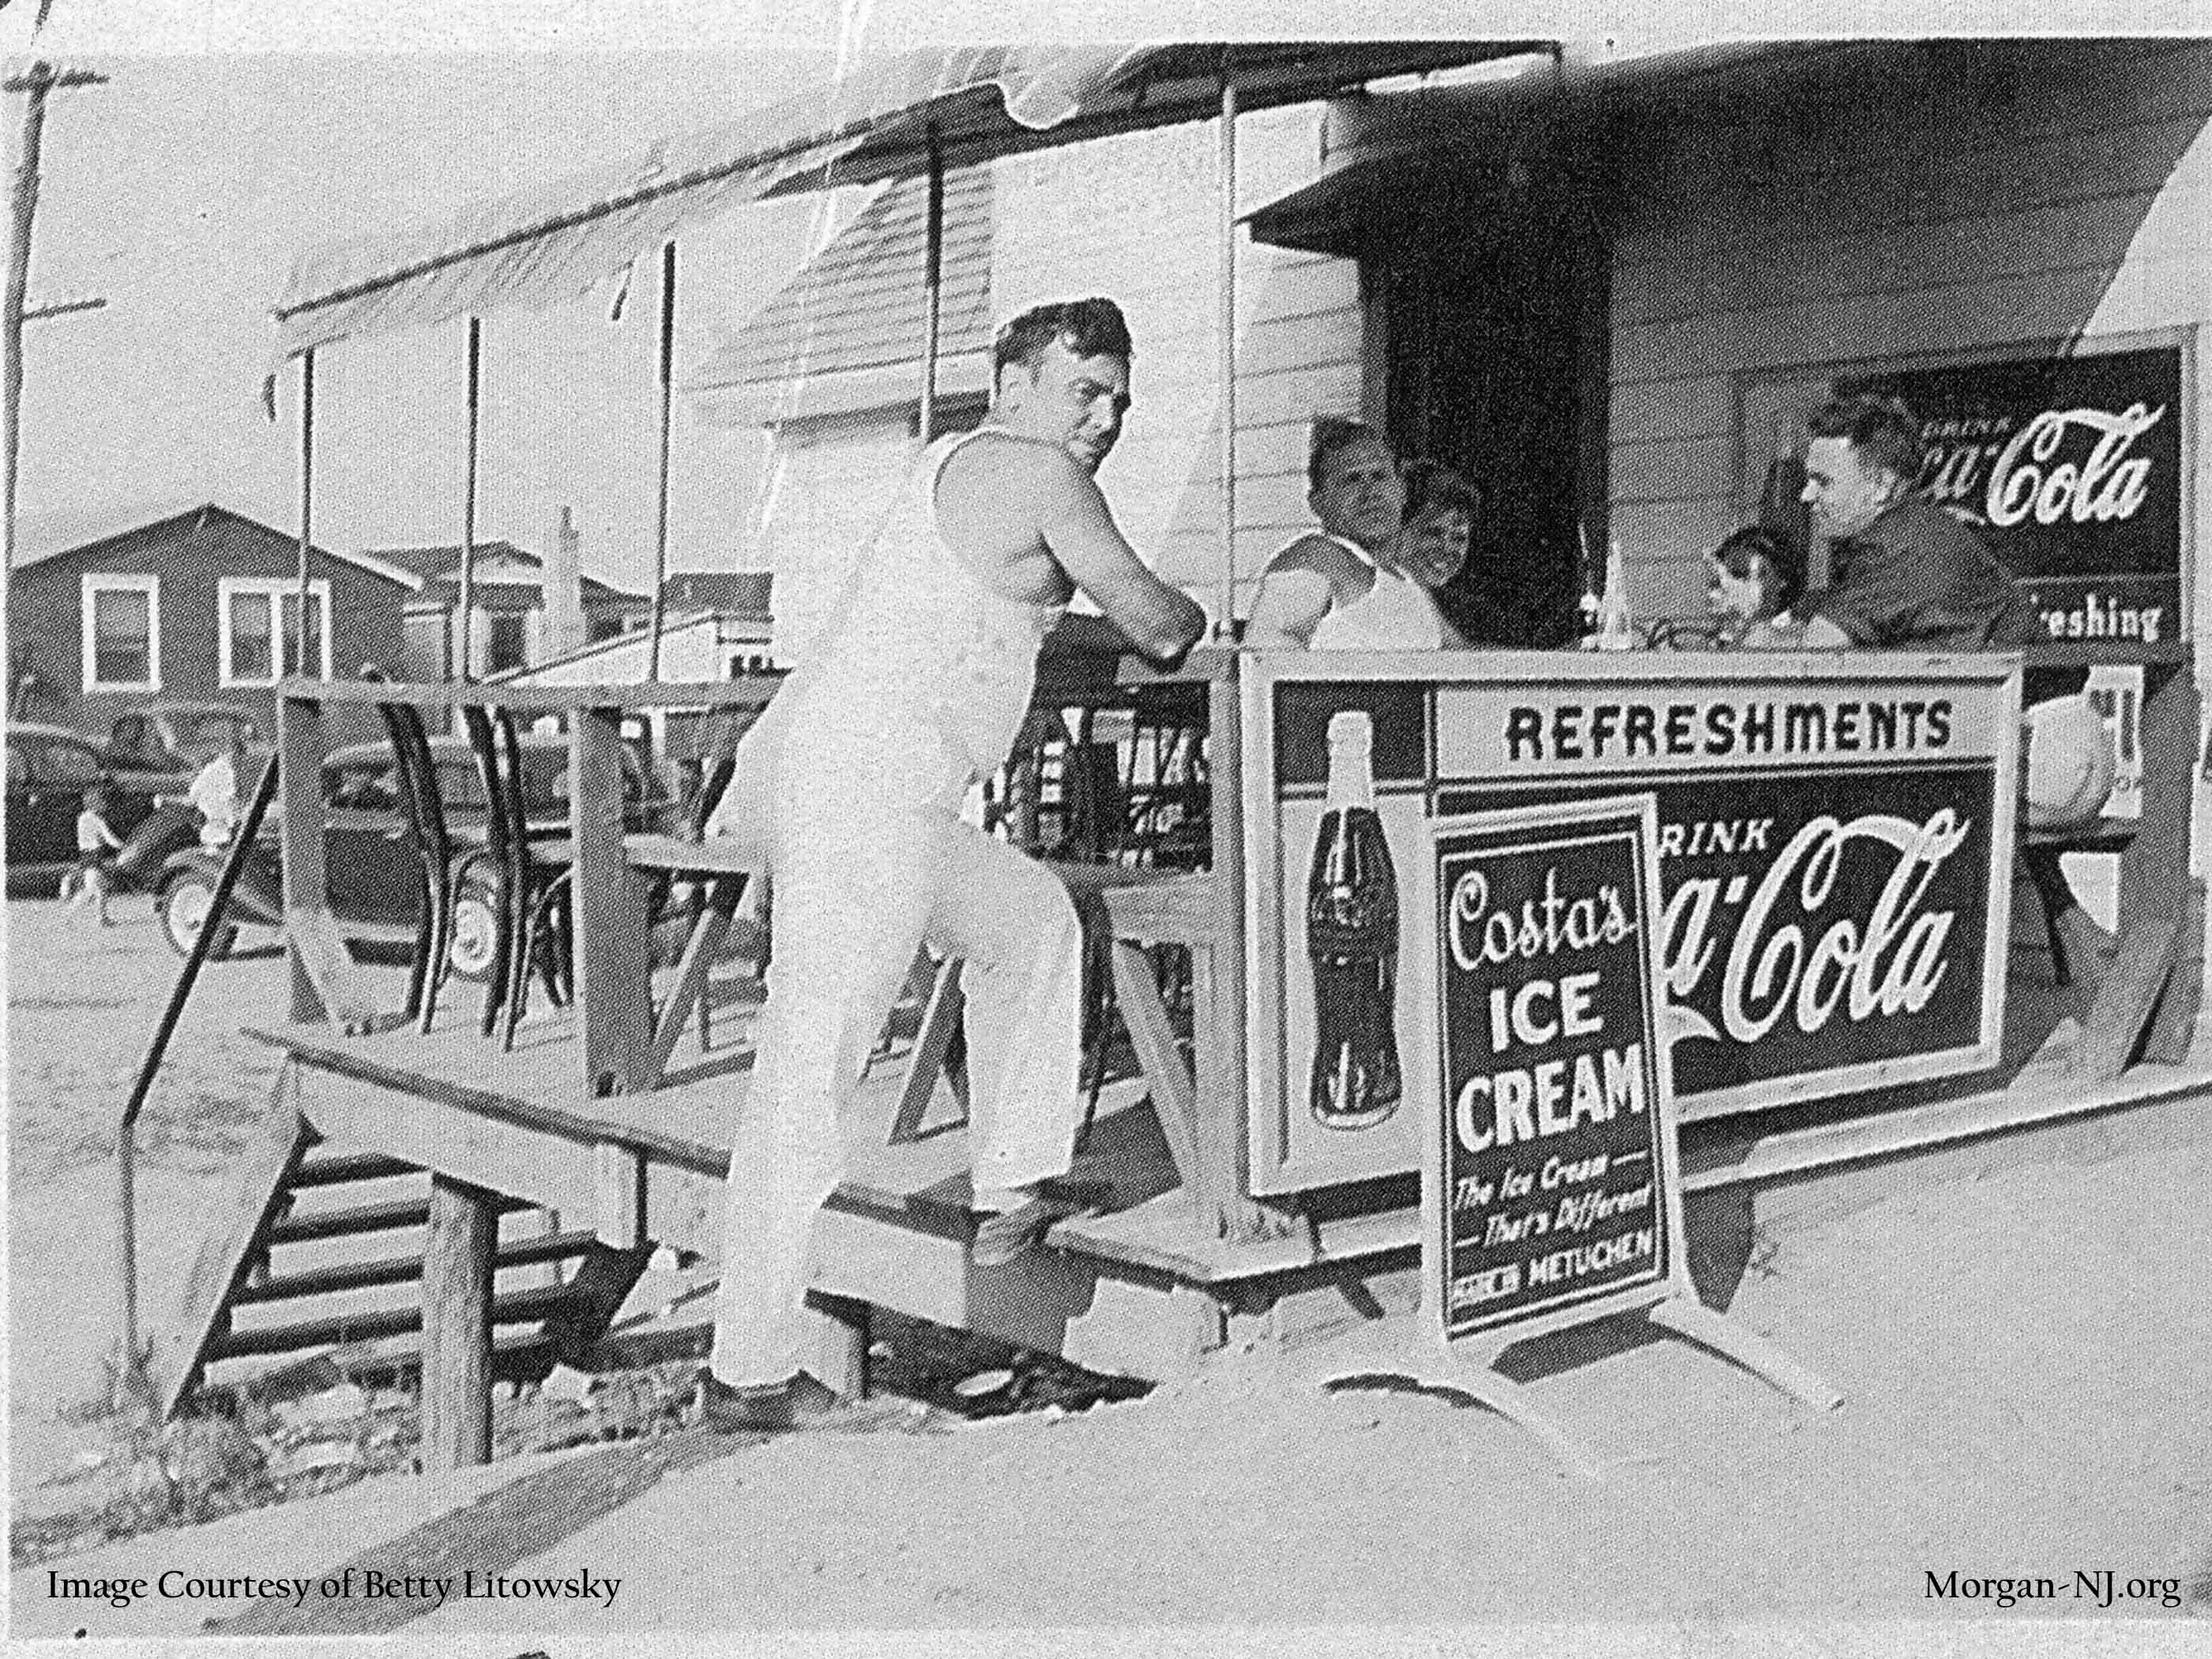 Don Macrae's Hot Dog Shanty on Morgan Beach circa 1937. Don Macrae, Sr. on the left and Don Macrae, Jr. on the right. Image courtesy of Betty Macrae Litowsky.